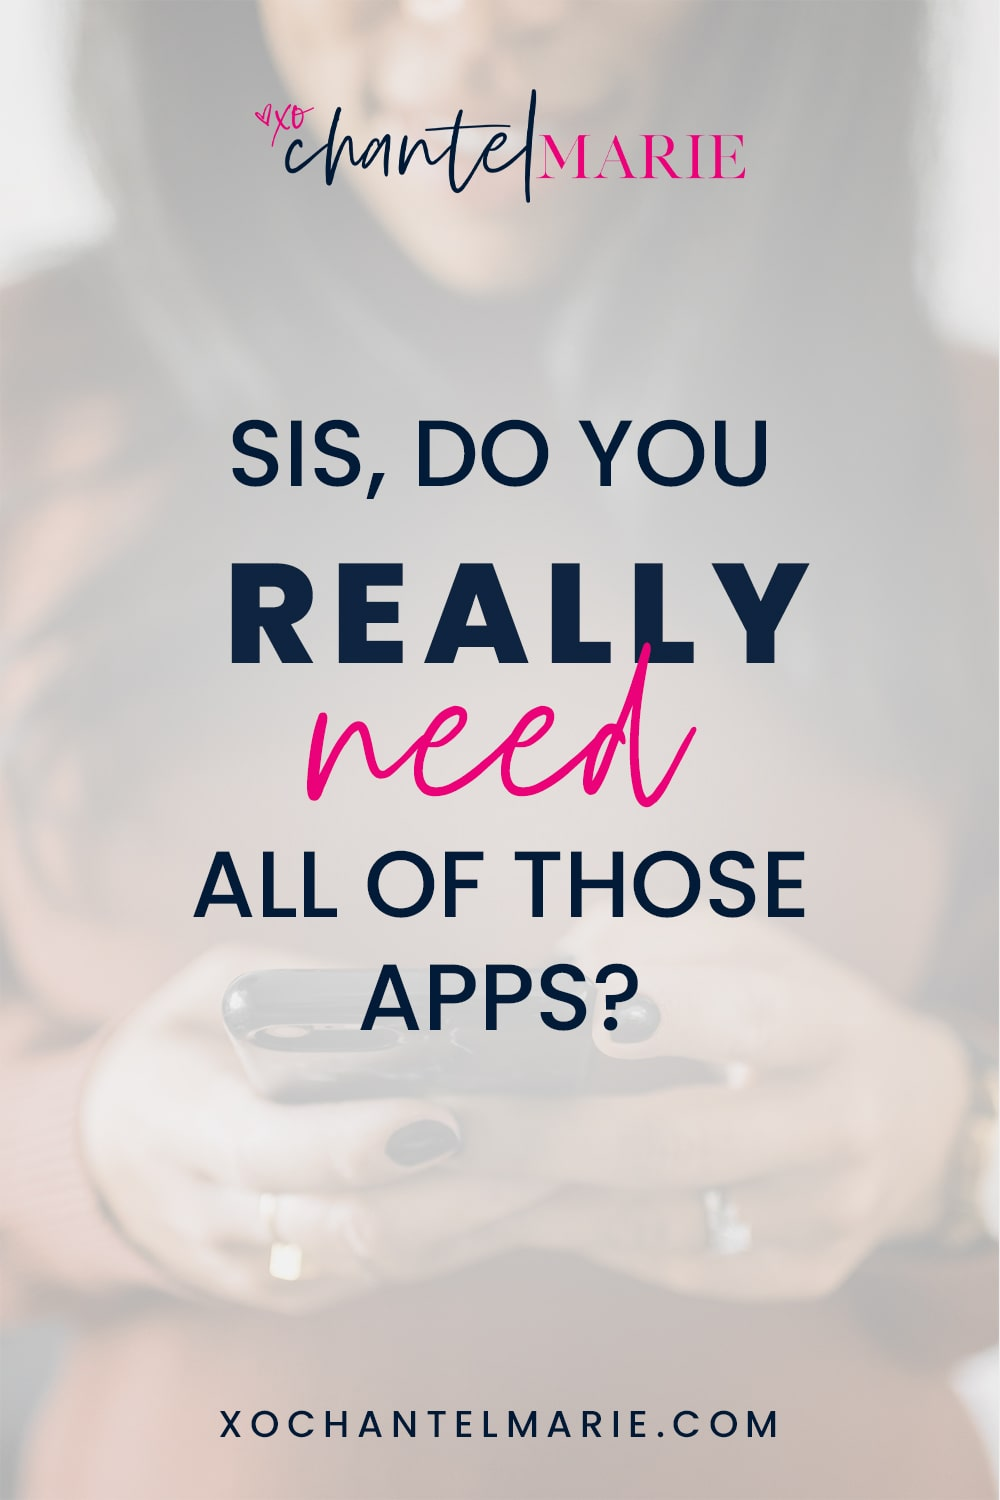 Do You Really Need All of Those Apps? No matter your career or business niche, you're busy and don't need any more distractions from your tasks at hand. So why are you allowing all the apps on your phone to cause distractions when your time can be better used? It's time to digitally declutter your life, starting with removing apps that are too distracting and that take up a lot of space on your phone. (Yes, friend, I'm talking about Candy Crush too).